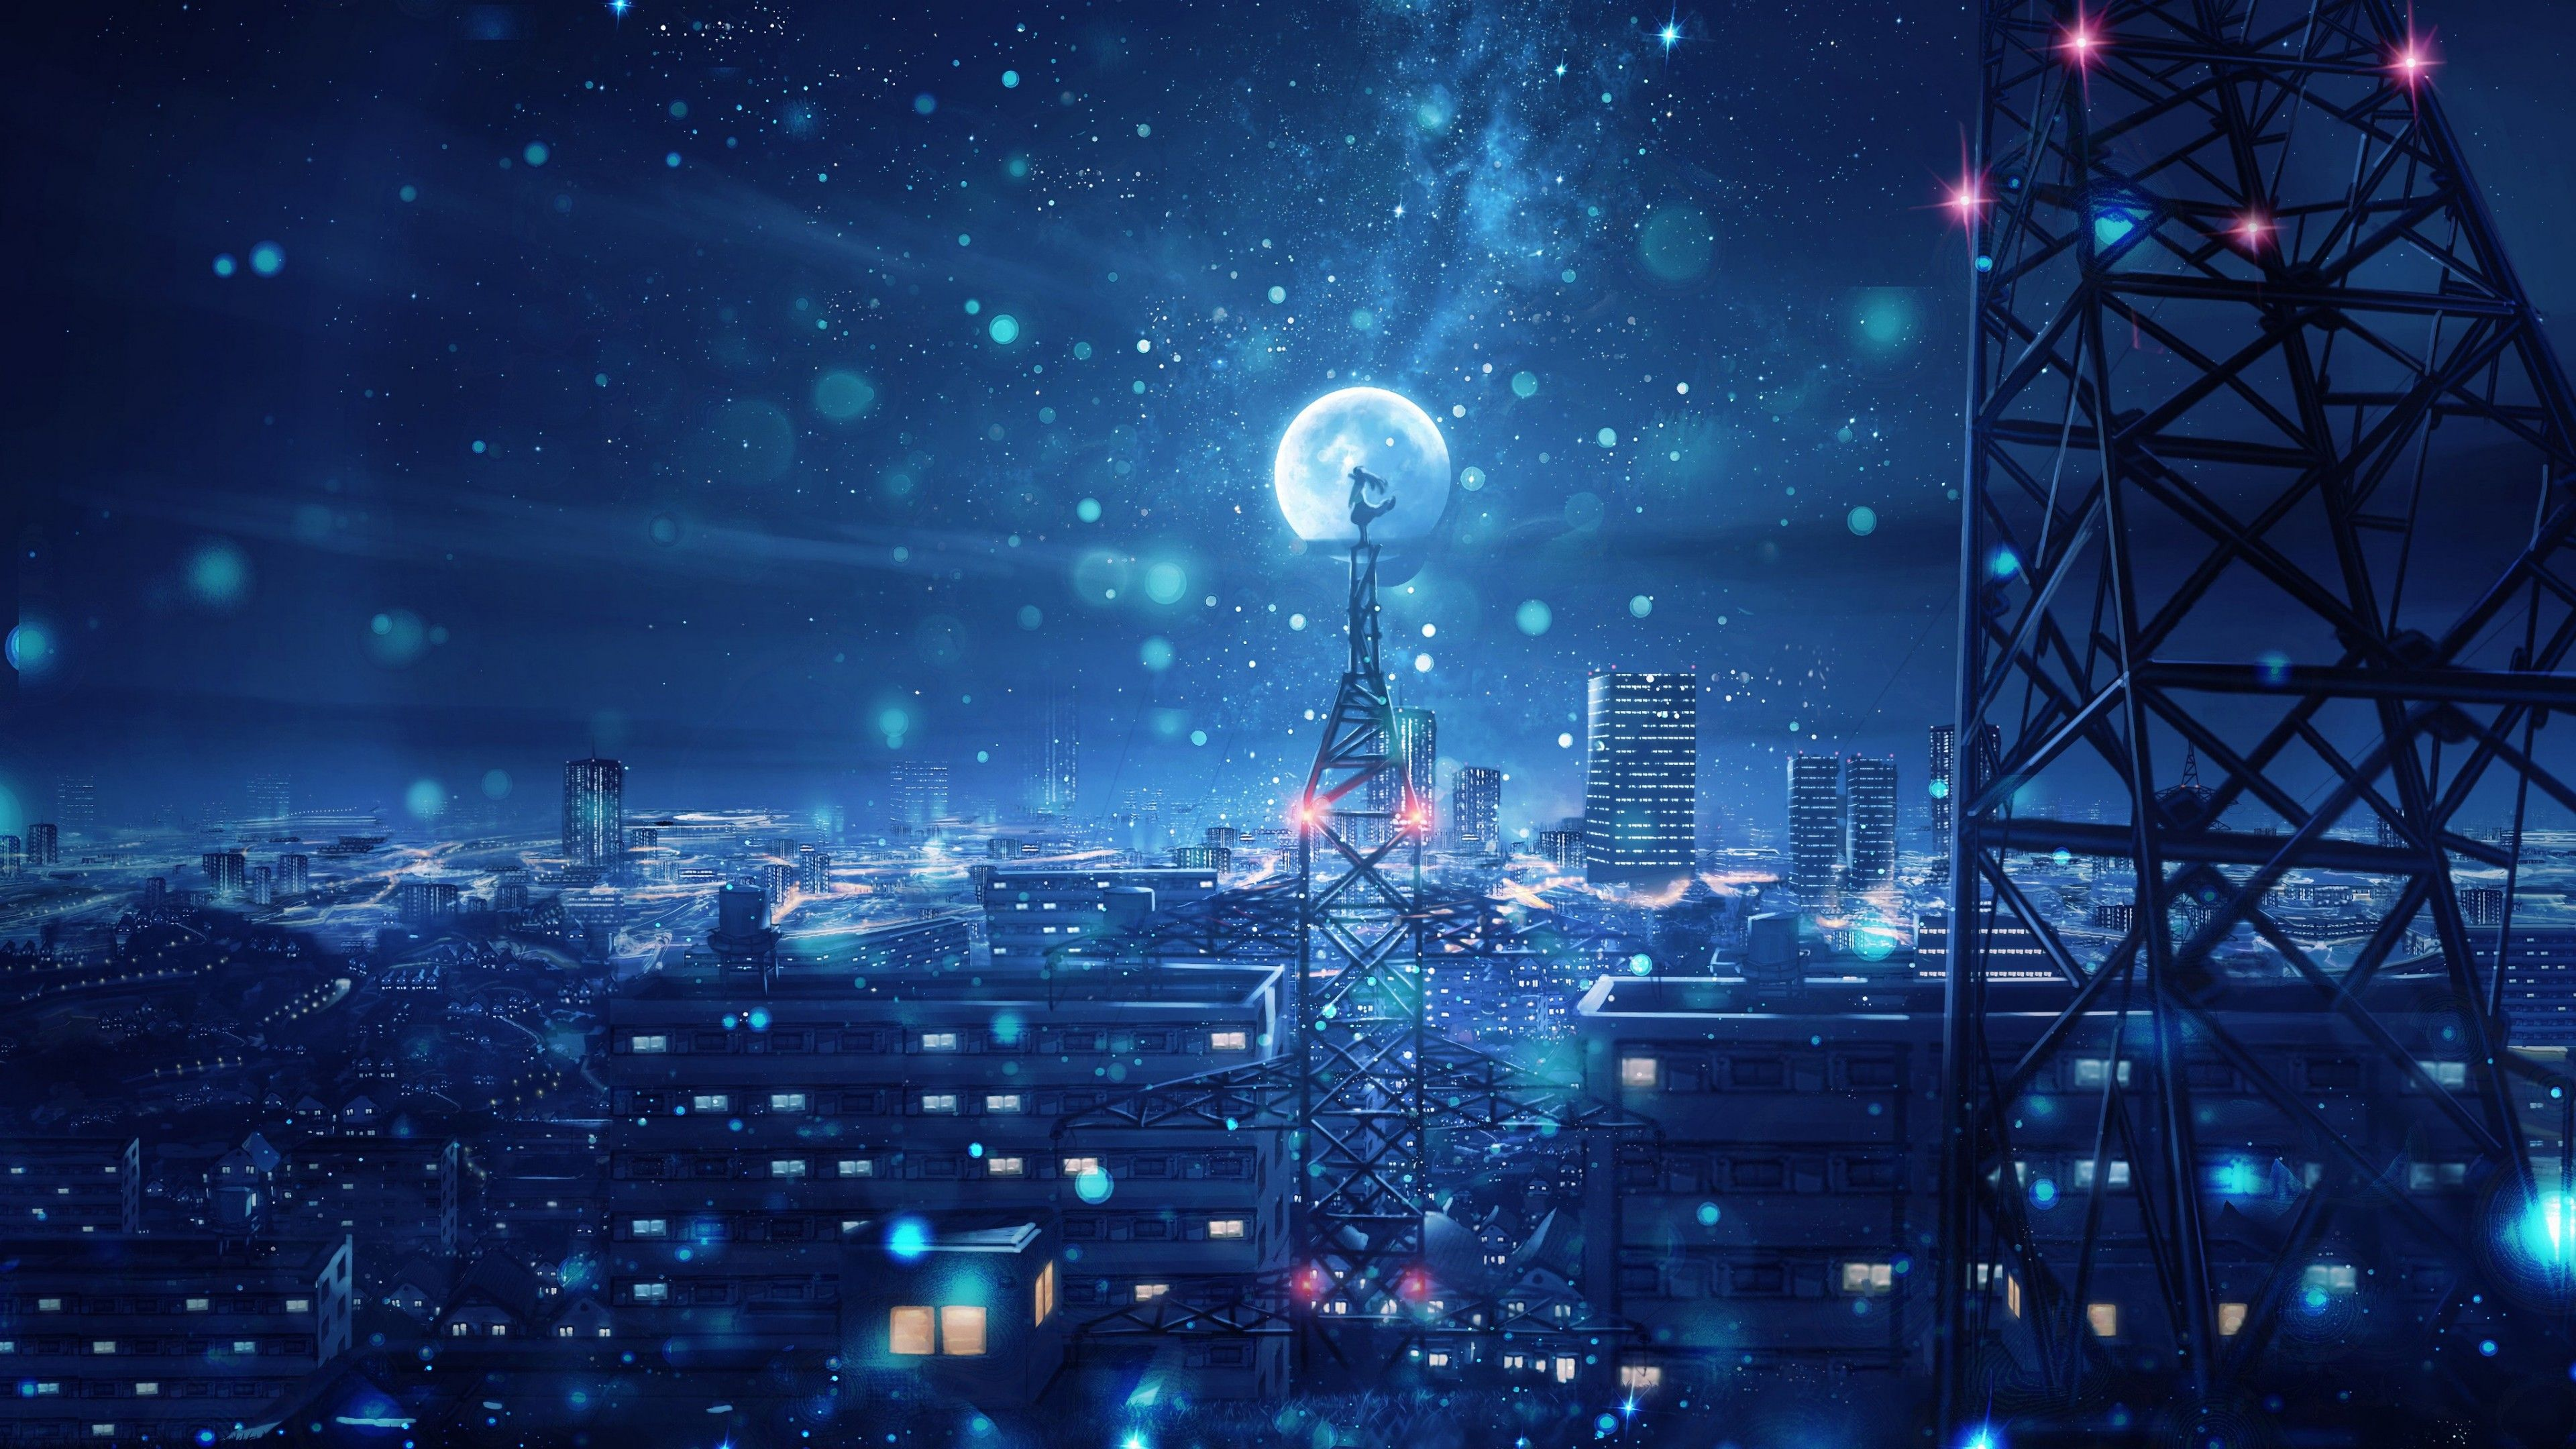 Night Aesthetic Anime PC Wallpapers - Wallpaper Cave